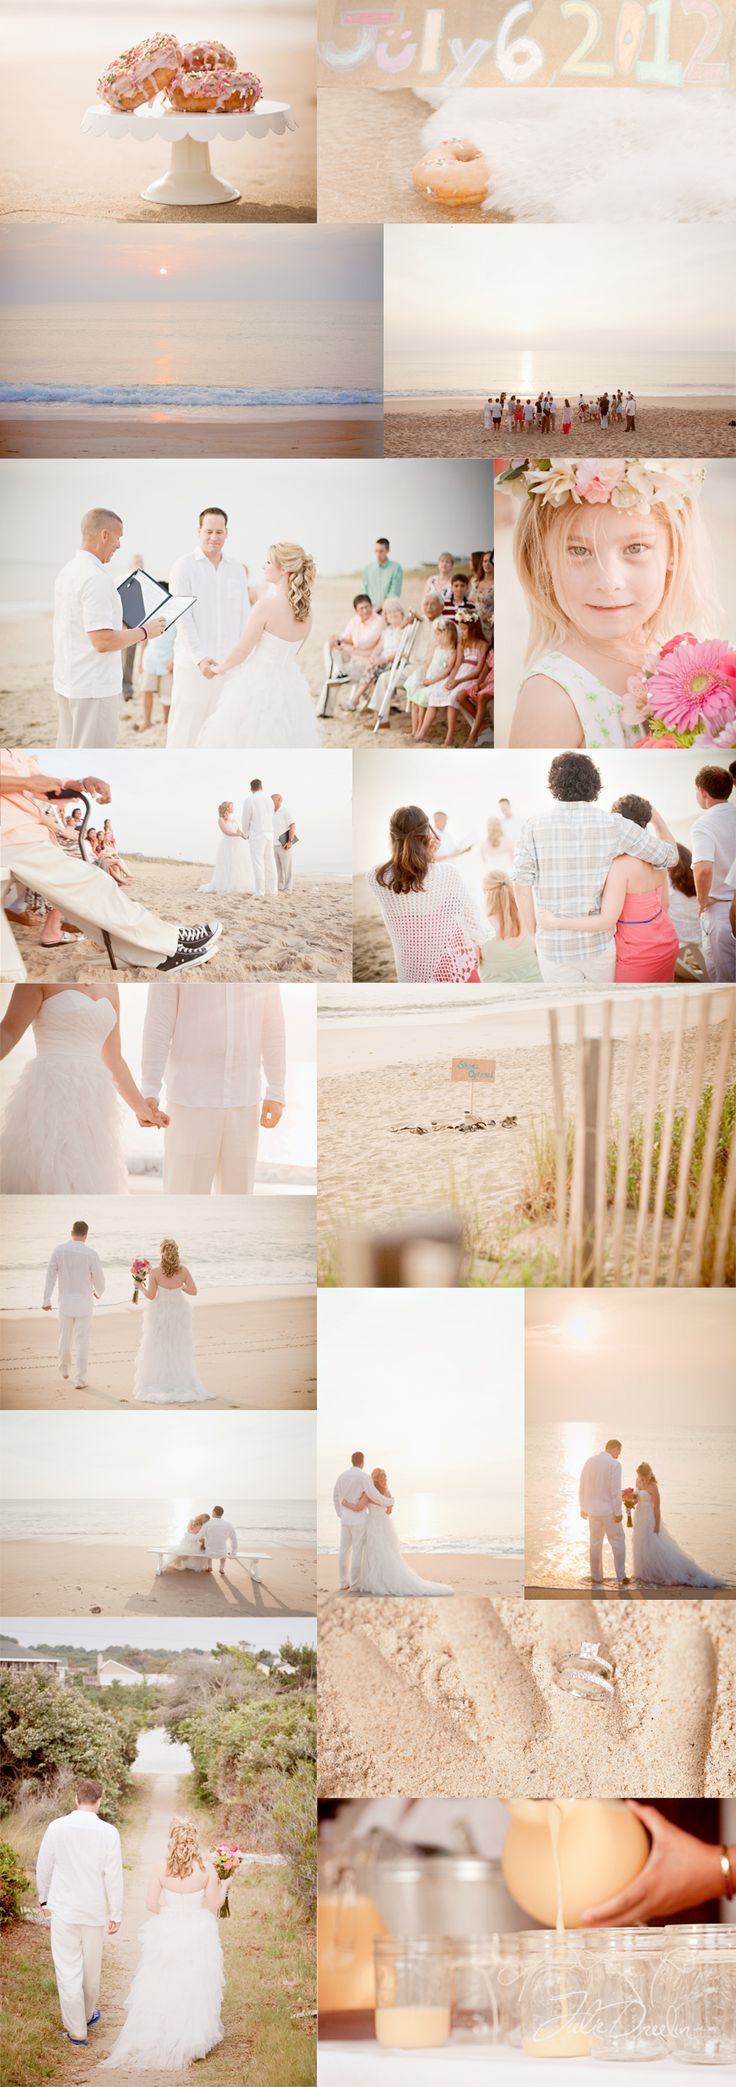 best sunrise wedding images on pinterest sunrise wedding